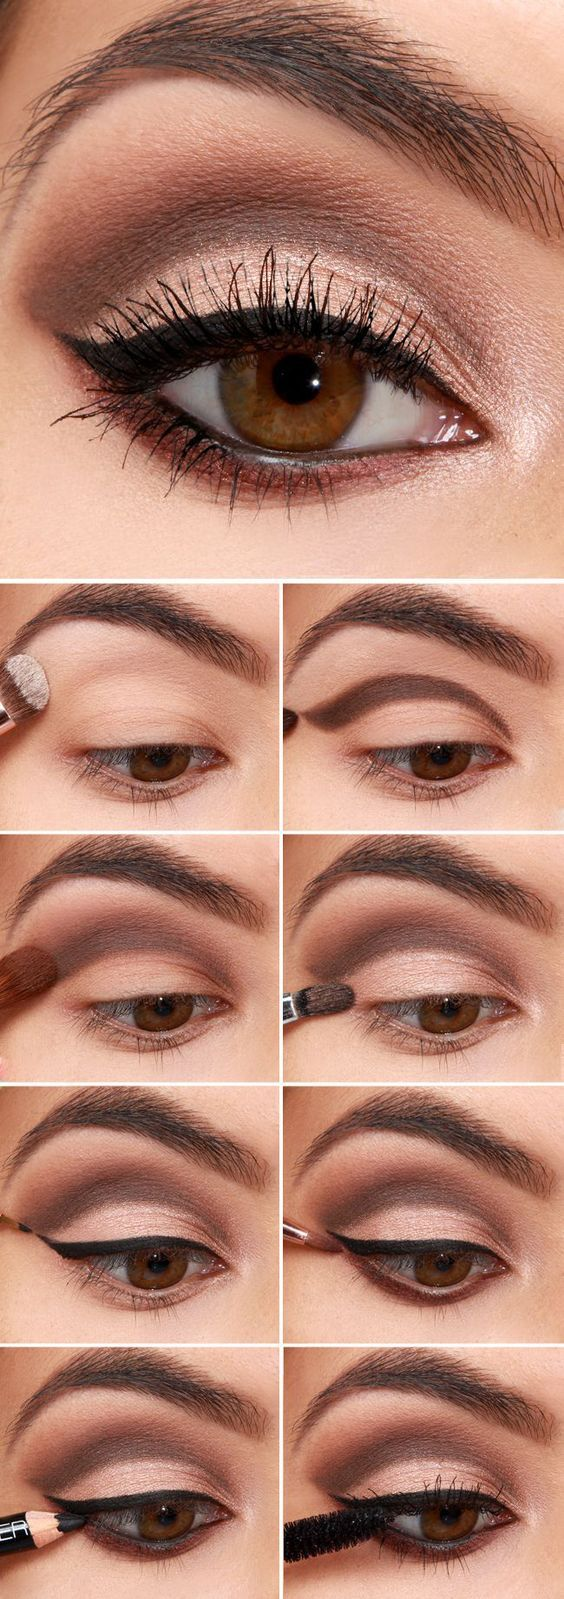 12 Eyeshadow Tutorials for Perfect Makeup ,  Wild about Beauty